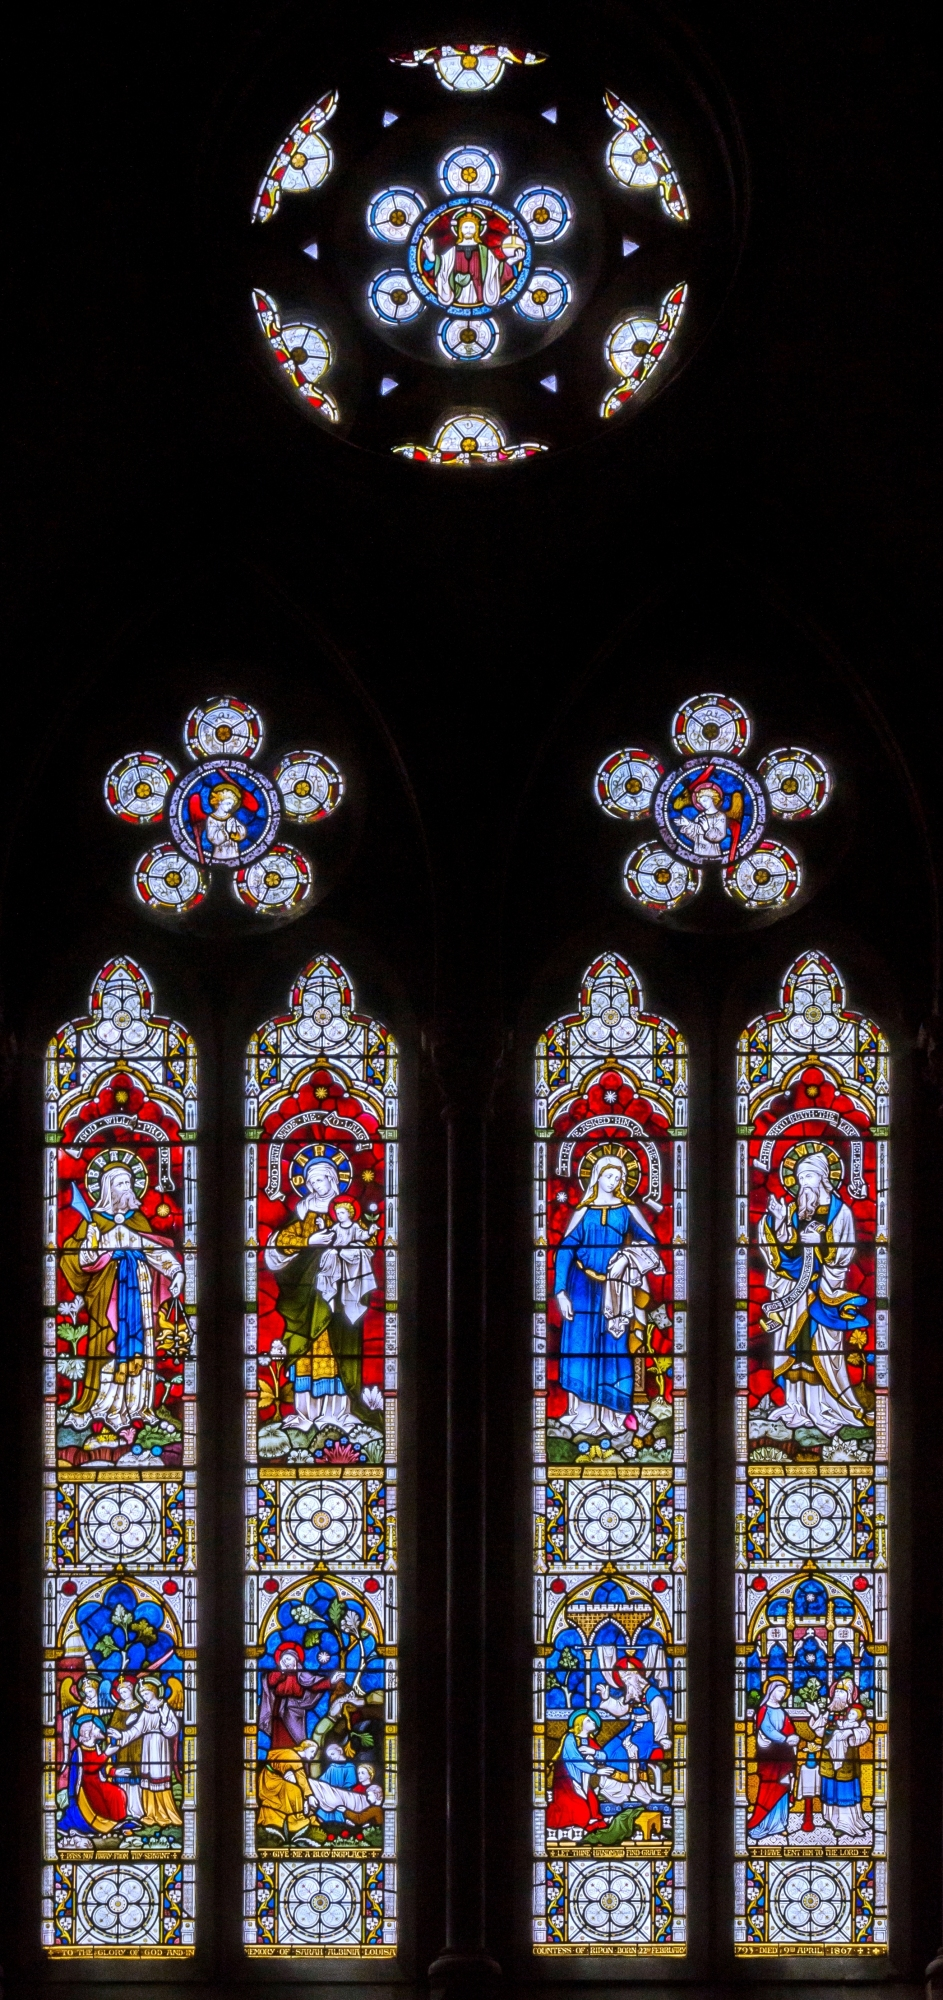 The Great West Window in All Saints given by the Marquess of Ripon in memory of his mother the Countess of Ripon.